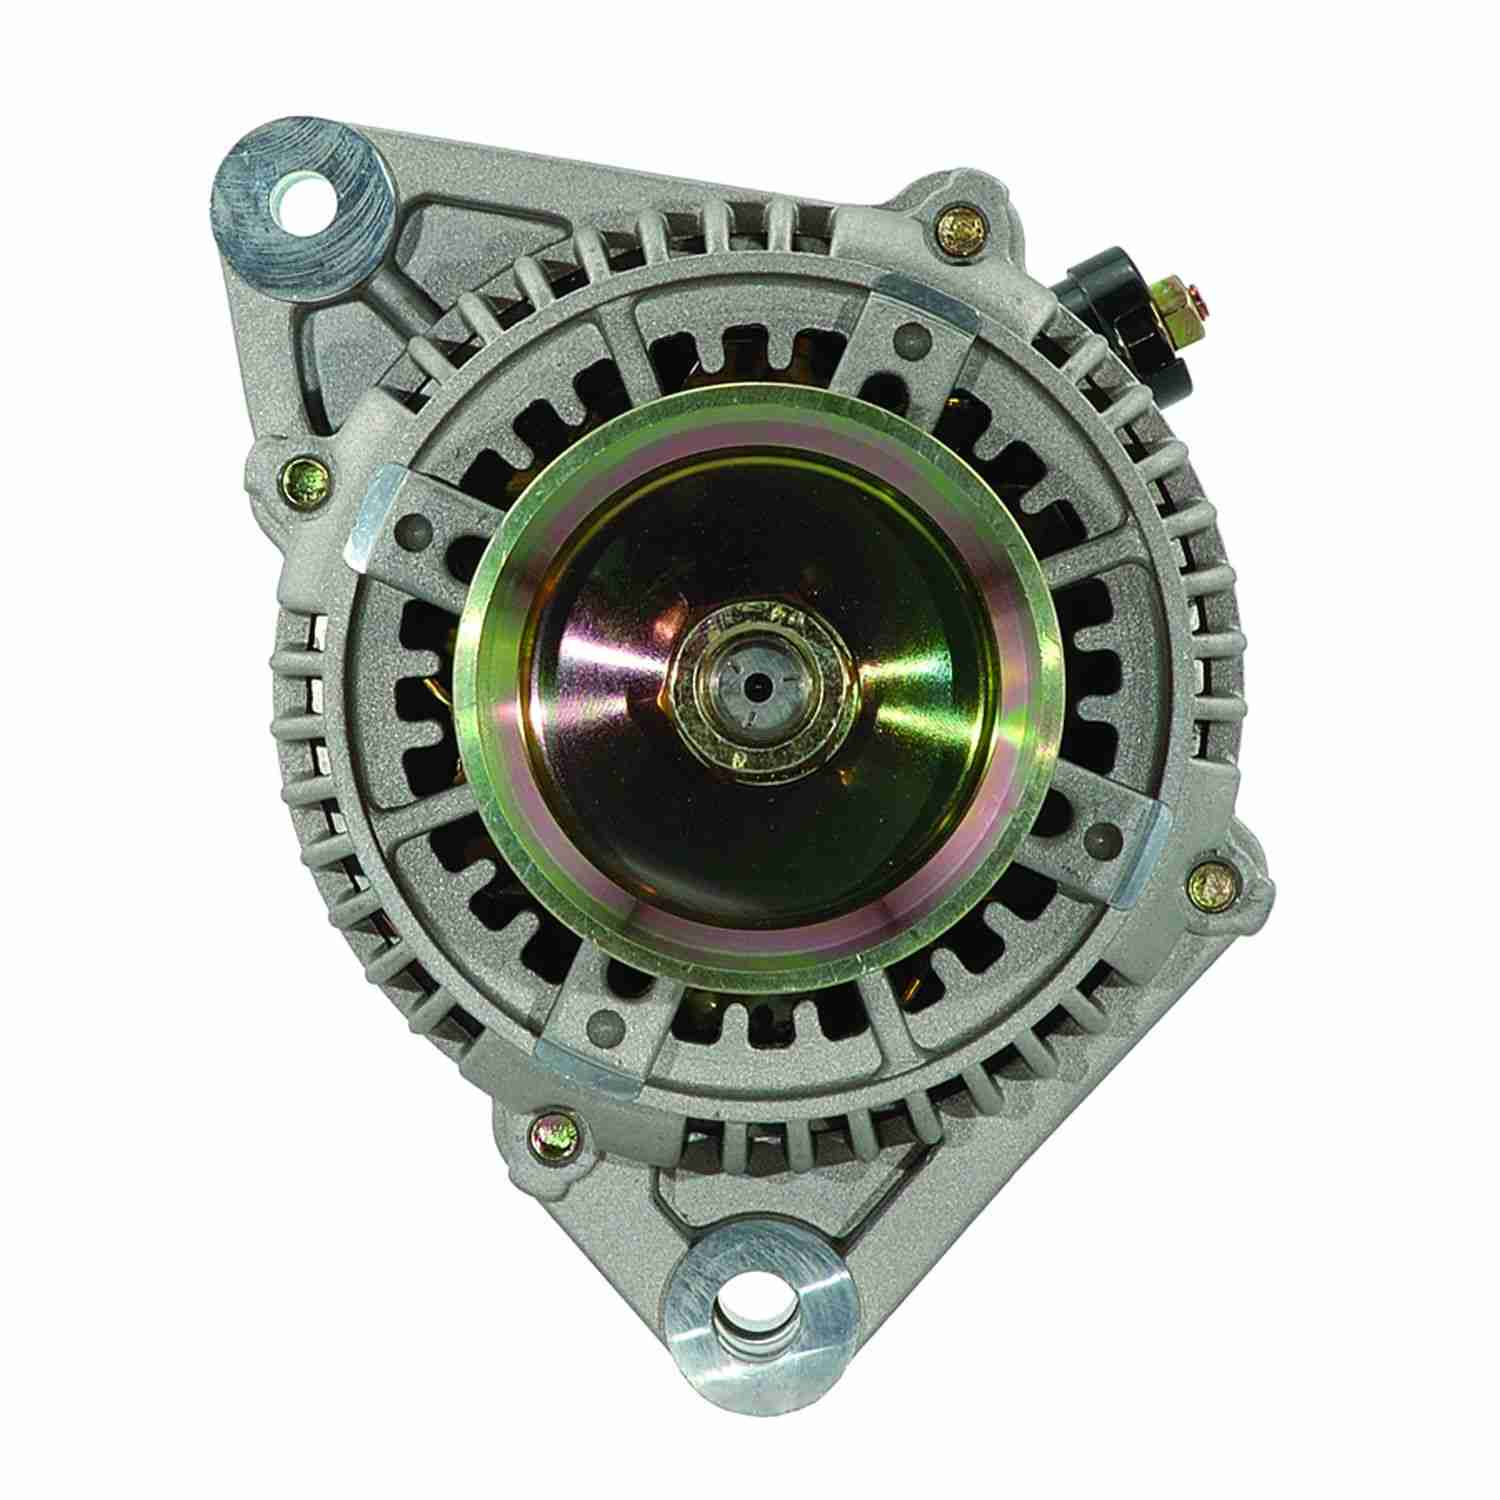 ACDELCO GOLD/PROFESSIONAL - Alternator - DCC 335-1179